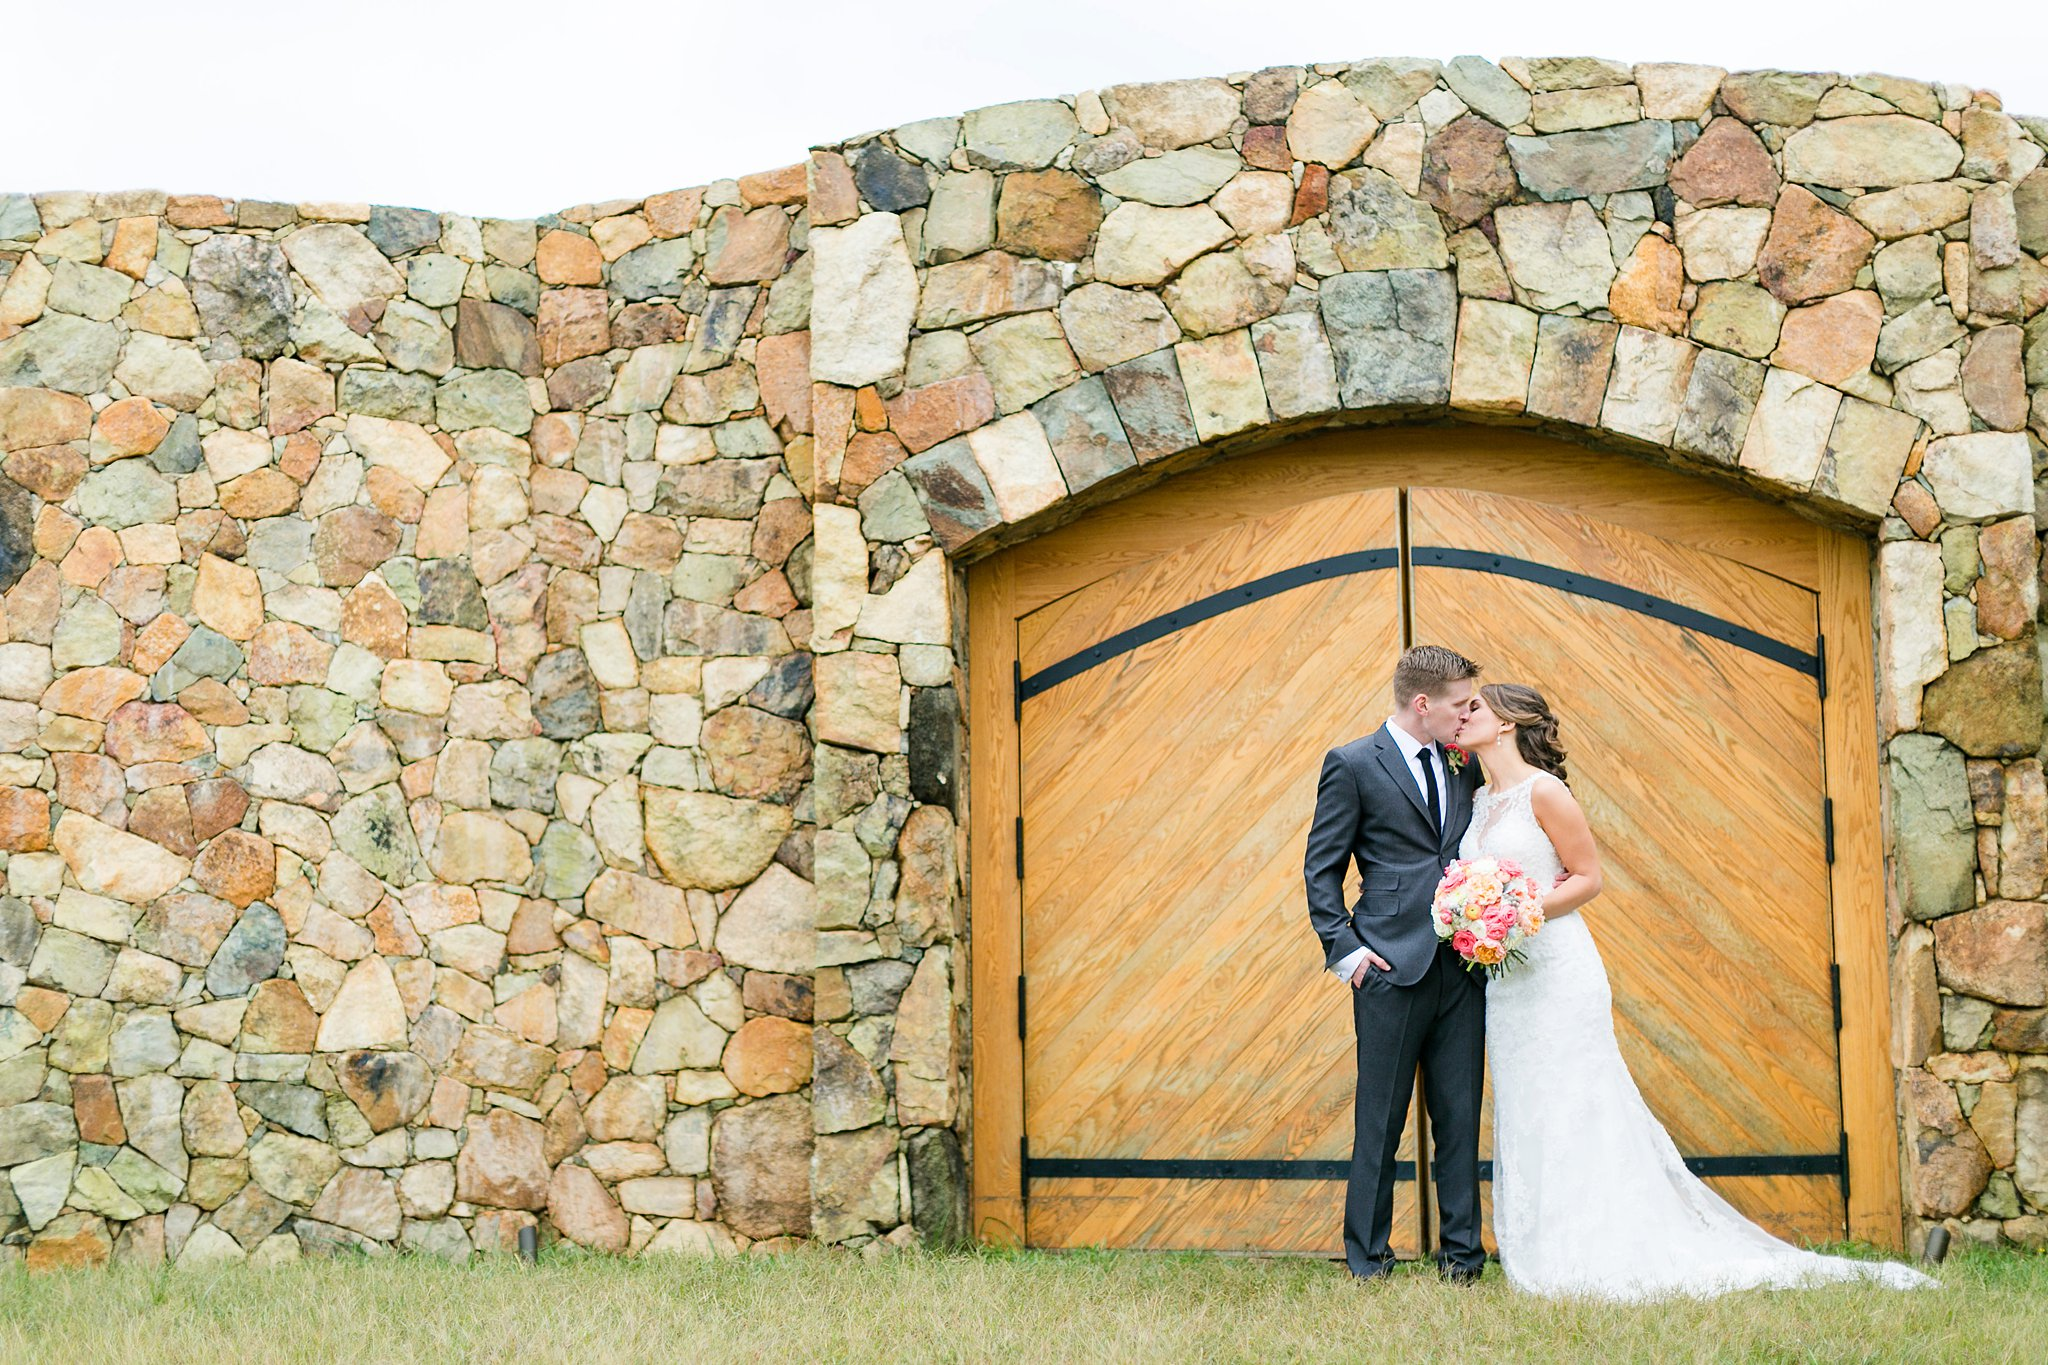 Stone Tower Winery Wedding Photos Virginia Wedding Photographer Megan Kelsey Photography Sam & Angela-248.jpg